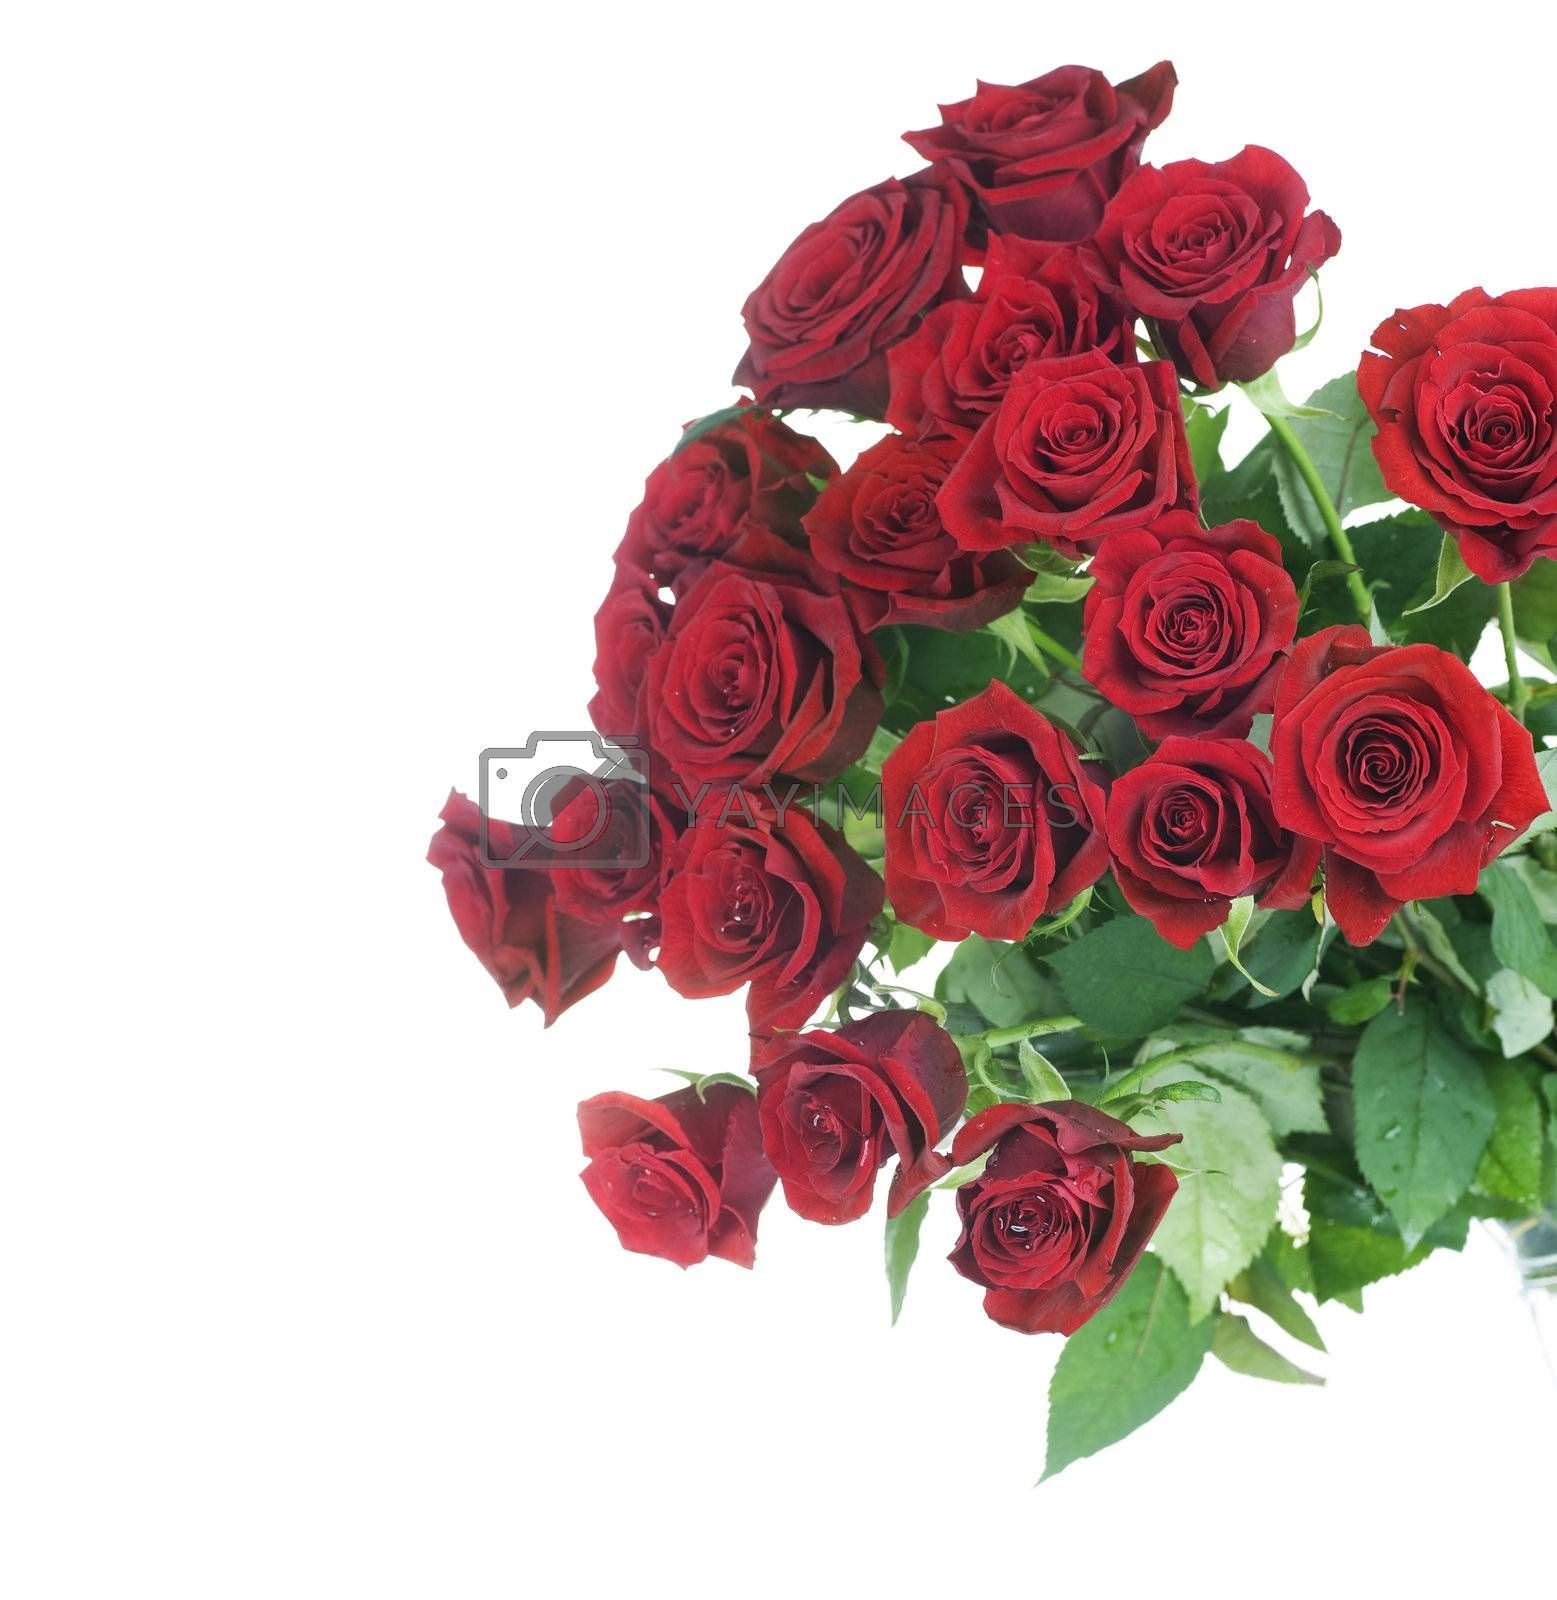 Red Roses bunch border over white by Subbotina Anna